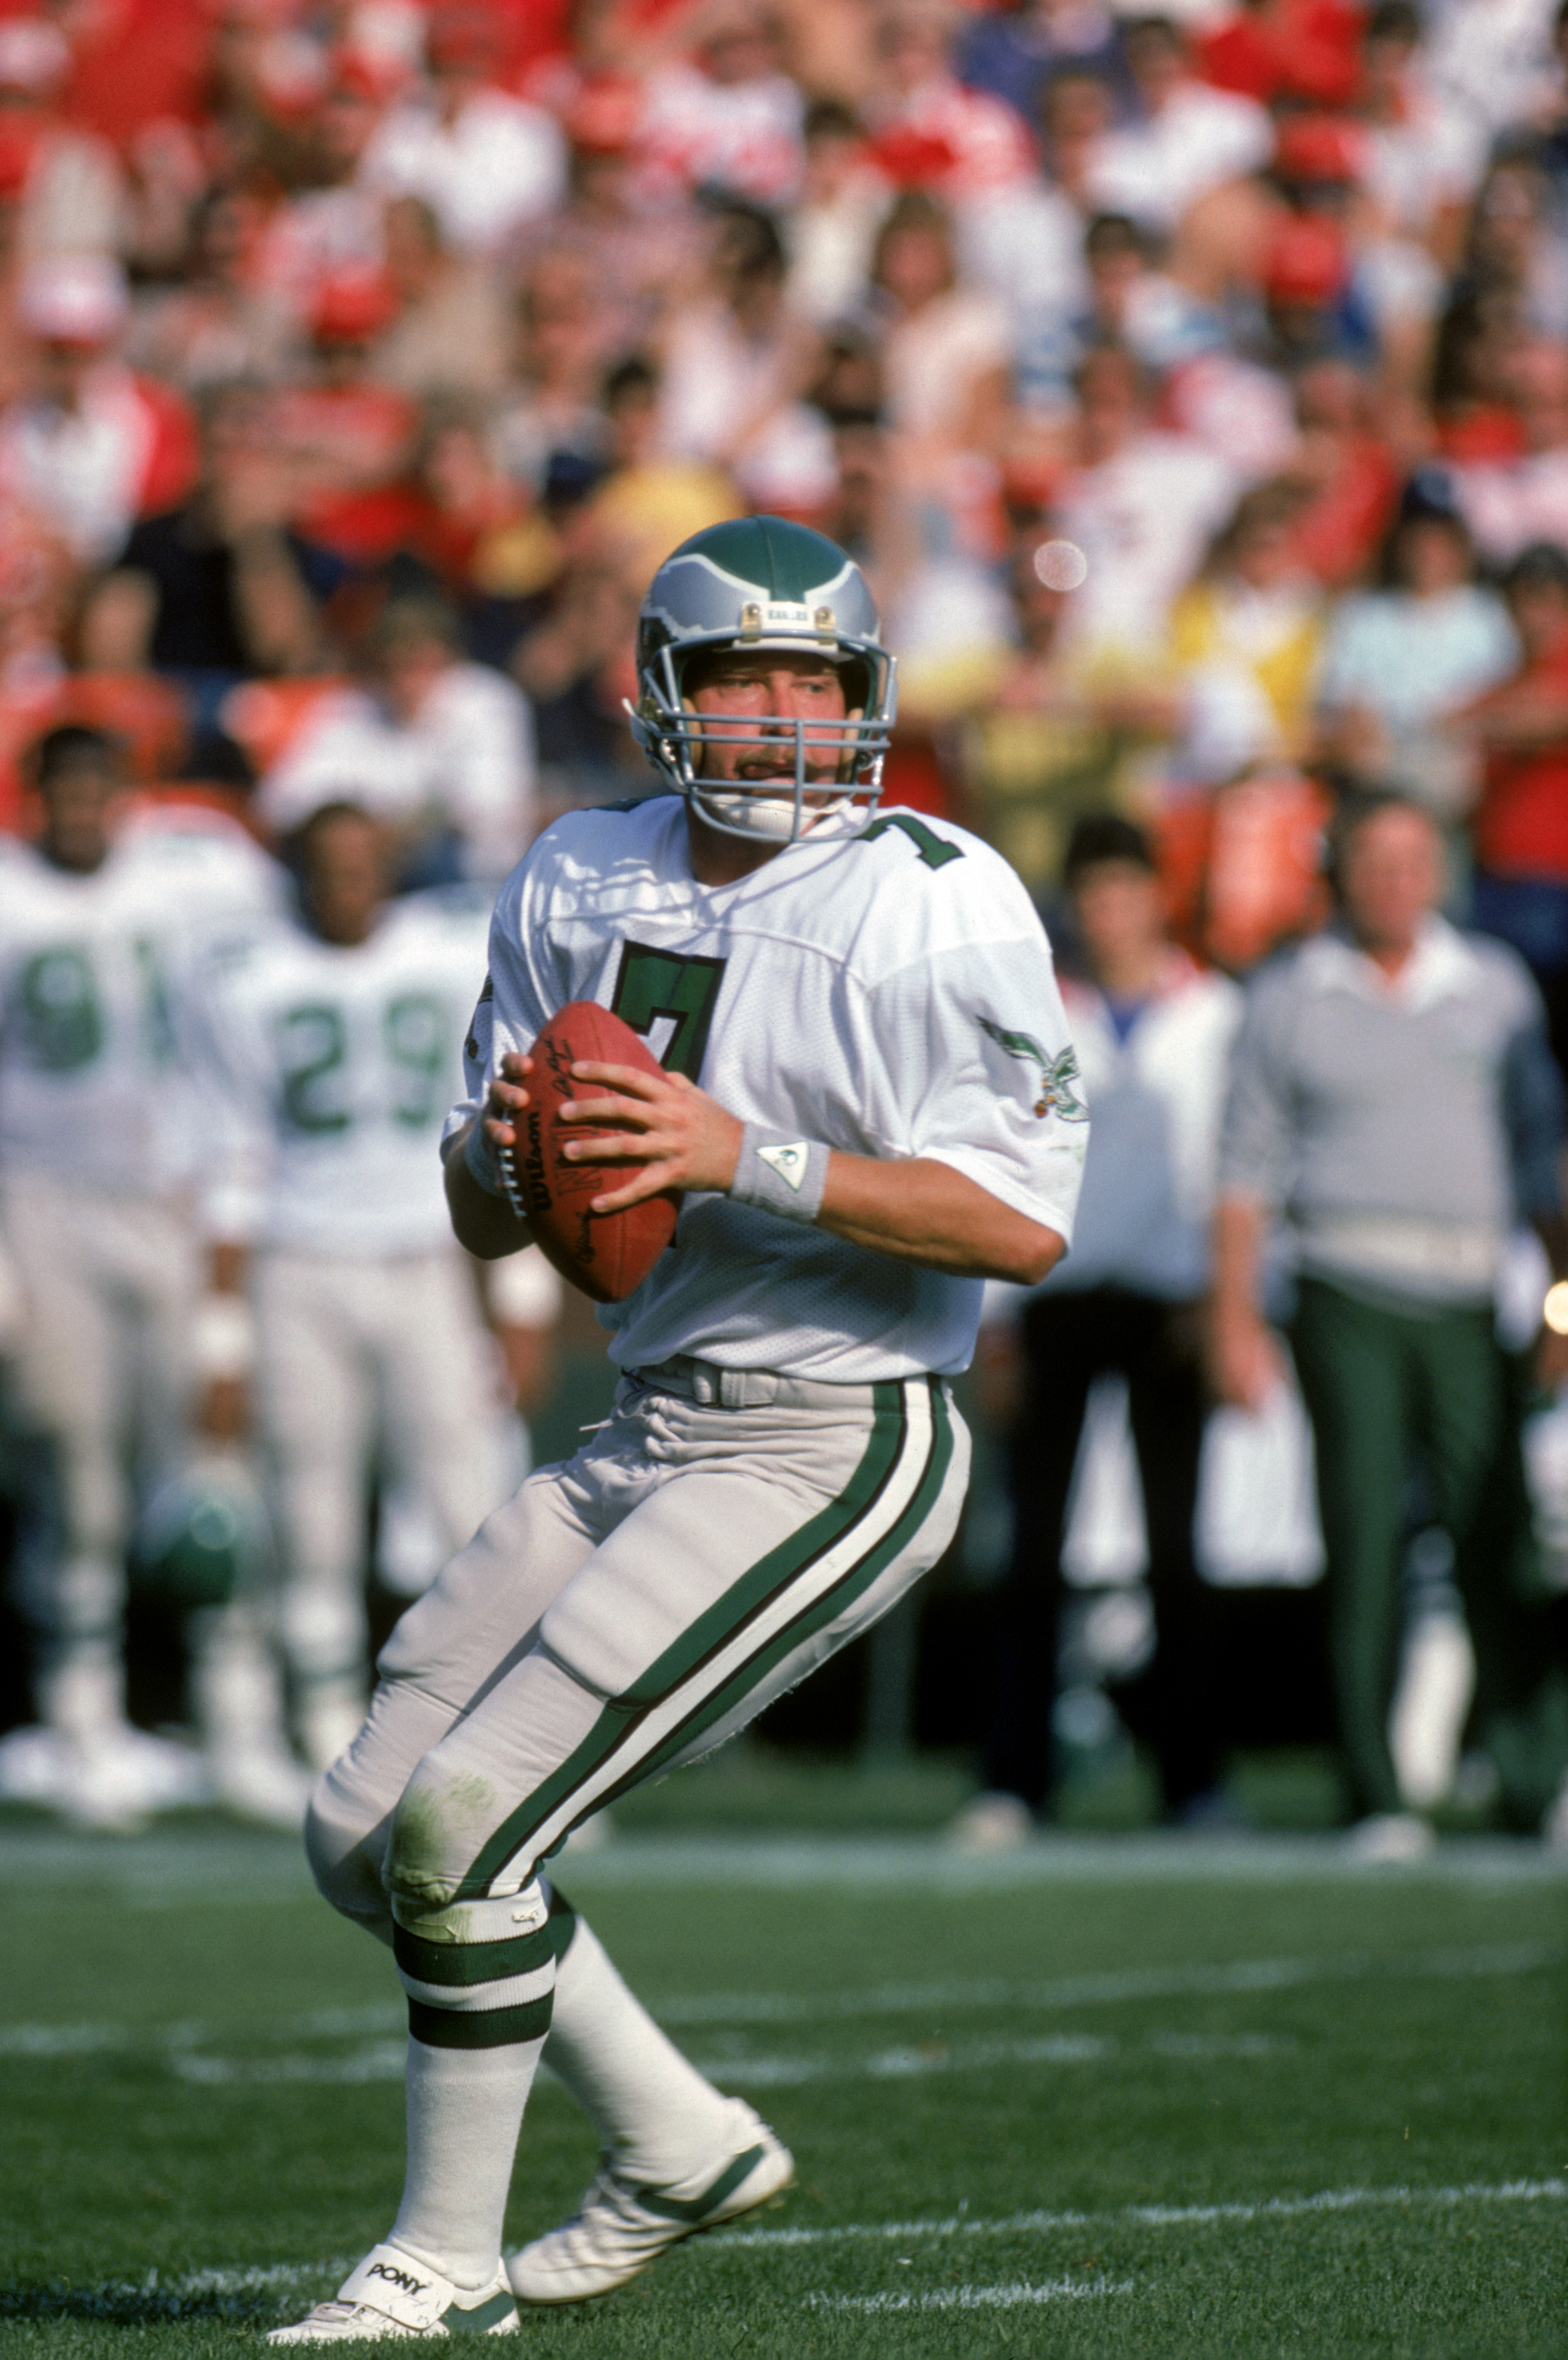 hot sales 7c267 bc596 Philadelphia Eagles: All-Time Jersey Numbers, 1- 15 ...